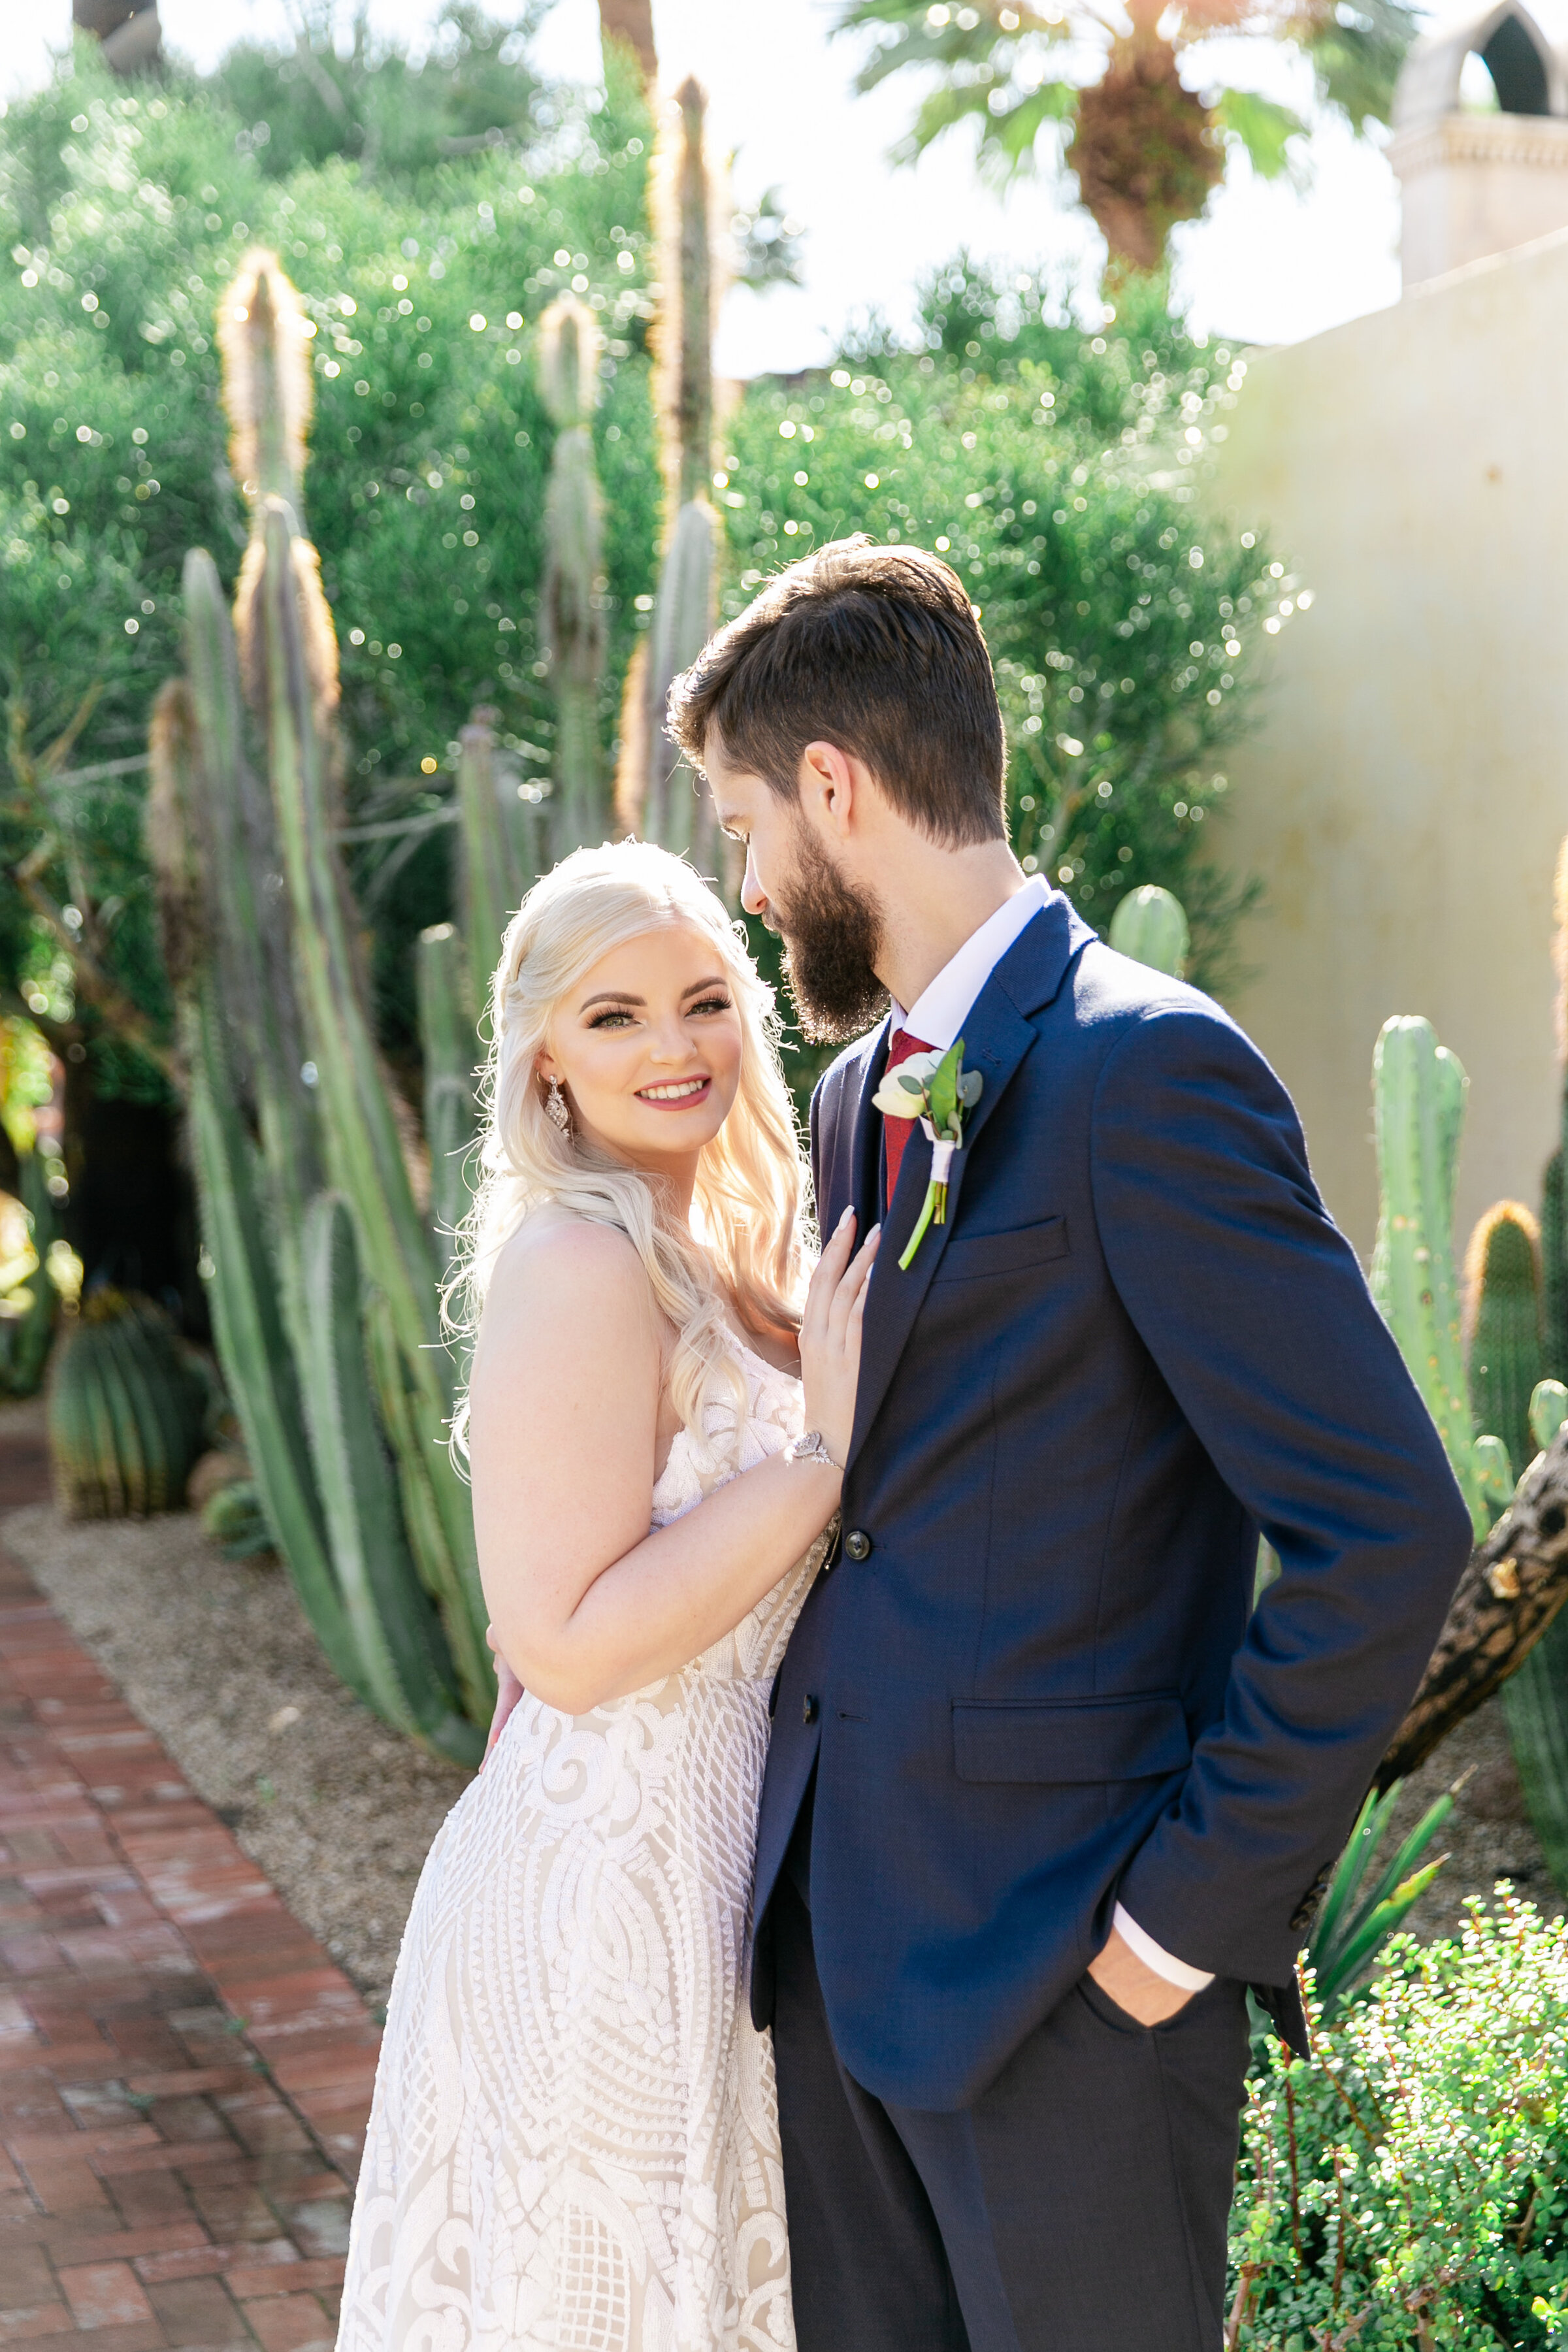 Karlie Colleen Photography - The Royal Palms Wedding - Some Like It Classic - Alex & Sam-151